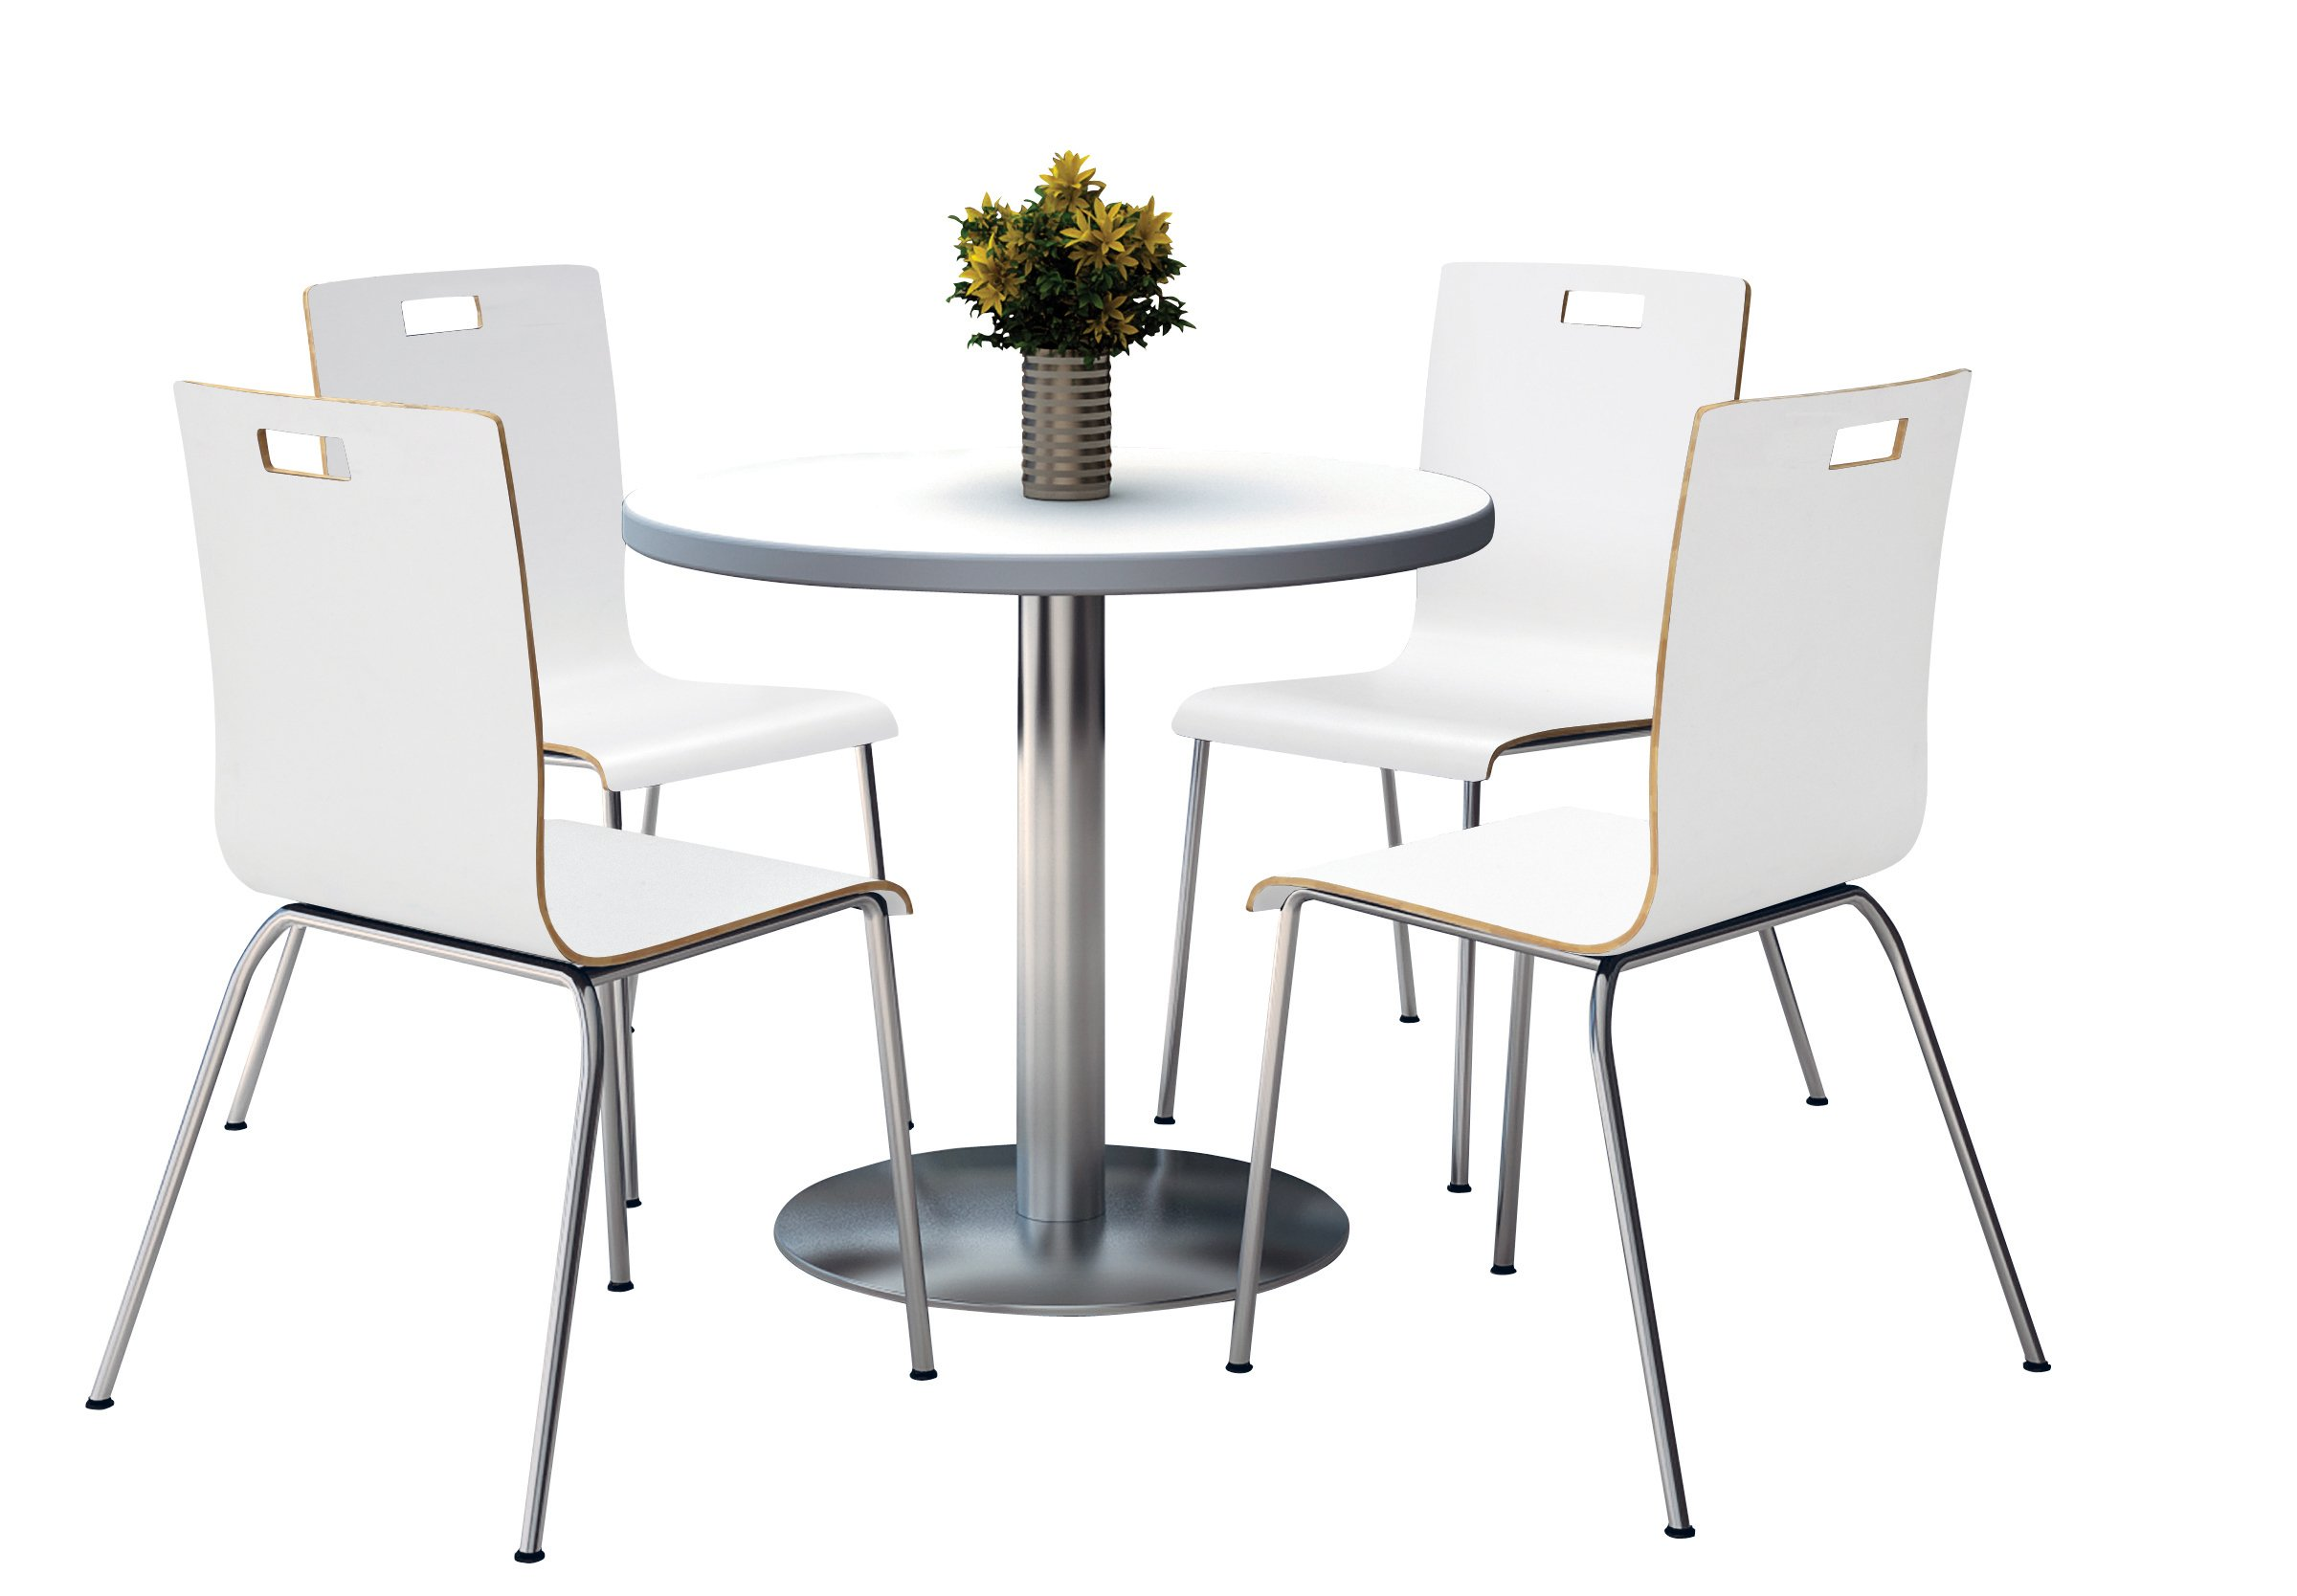 KFI Seating Round Laminate Top Pedestal Table with 4 White Stacking Bentwood Chairs, 36'' Diameter, Crisp Linen by KFI Seating